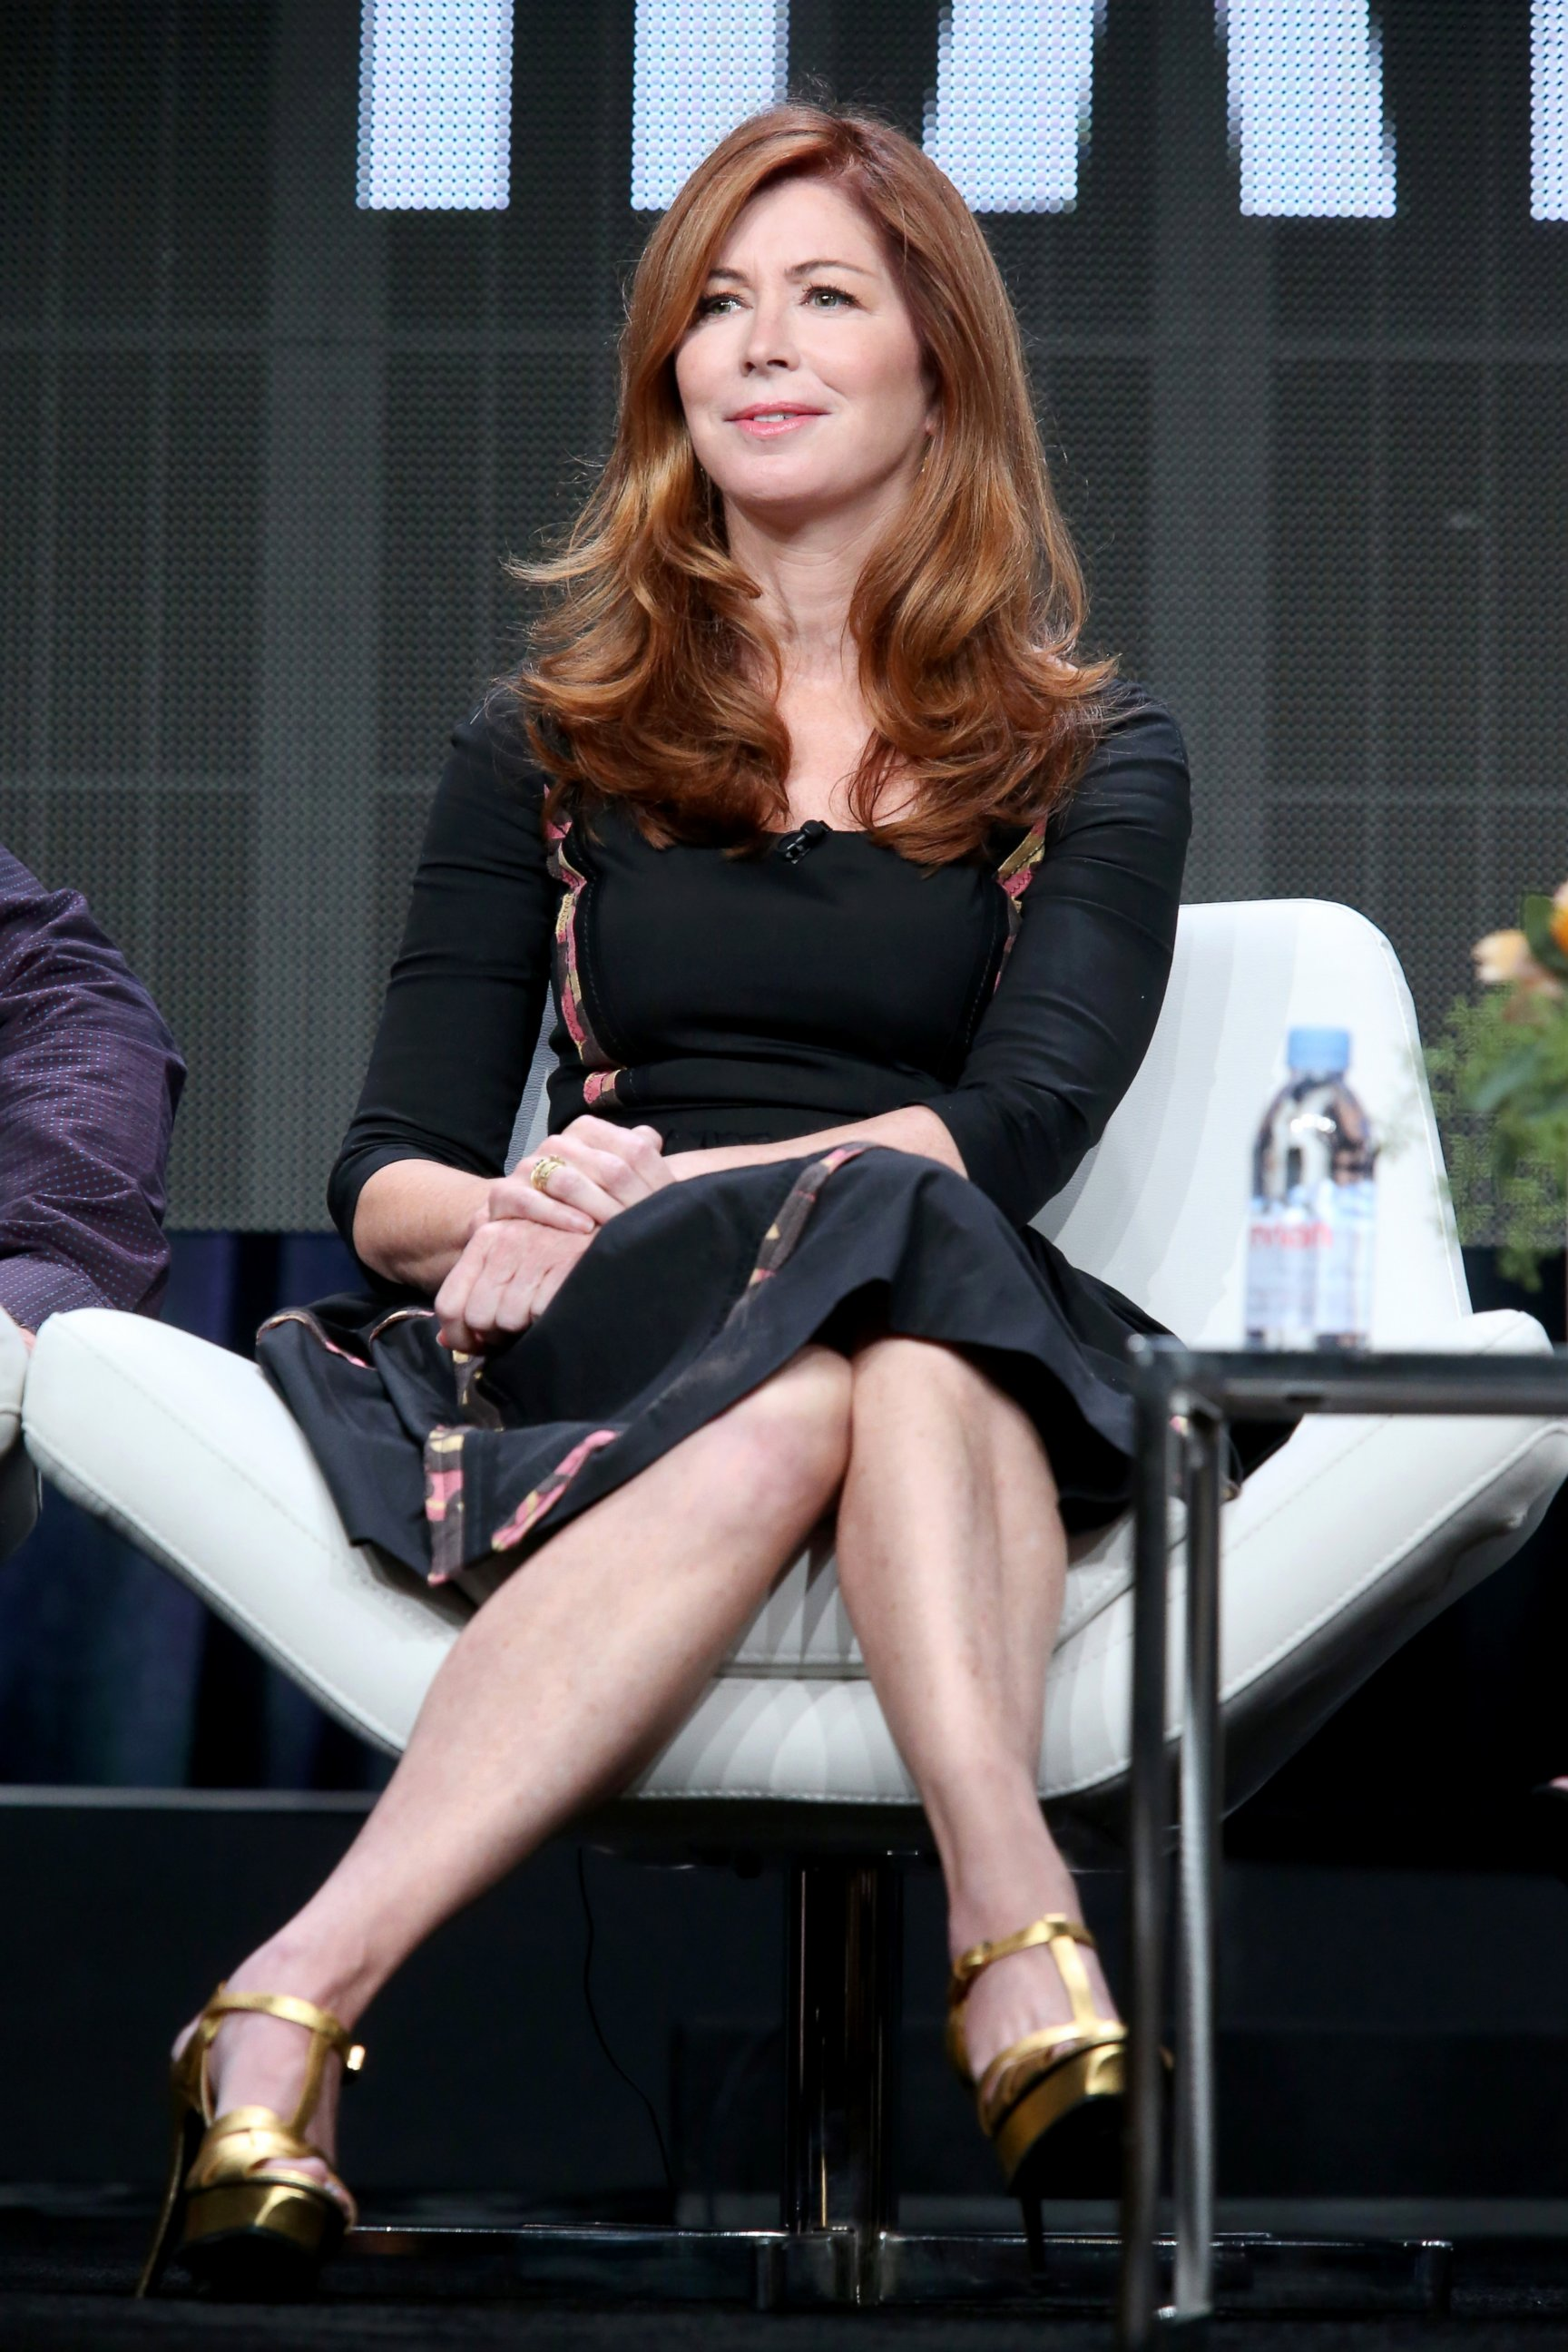 dana delany emmydana delany 2016, dana delany 2017, dana delany vk, dana delany desperate housewives, dana delany china beach, dana delany films, dana delany sister, dana delany desperate, dana delany photos, dana delany фото, dana delany pasadena, dana delany and jennifer beals, dana delany religion, dana delany nathan fillion, dana delany emmy, dana delany looks, dana delany music, dana delany new series, dana delany instagram, dana delany body of proof